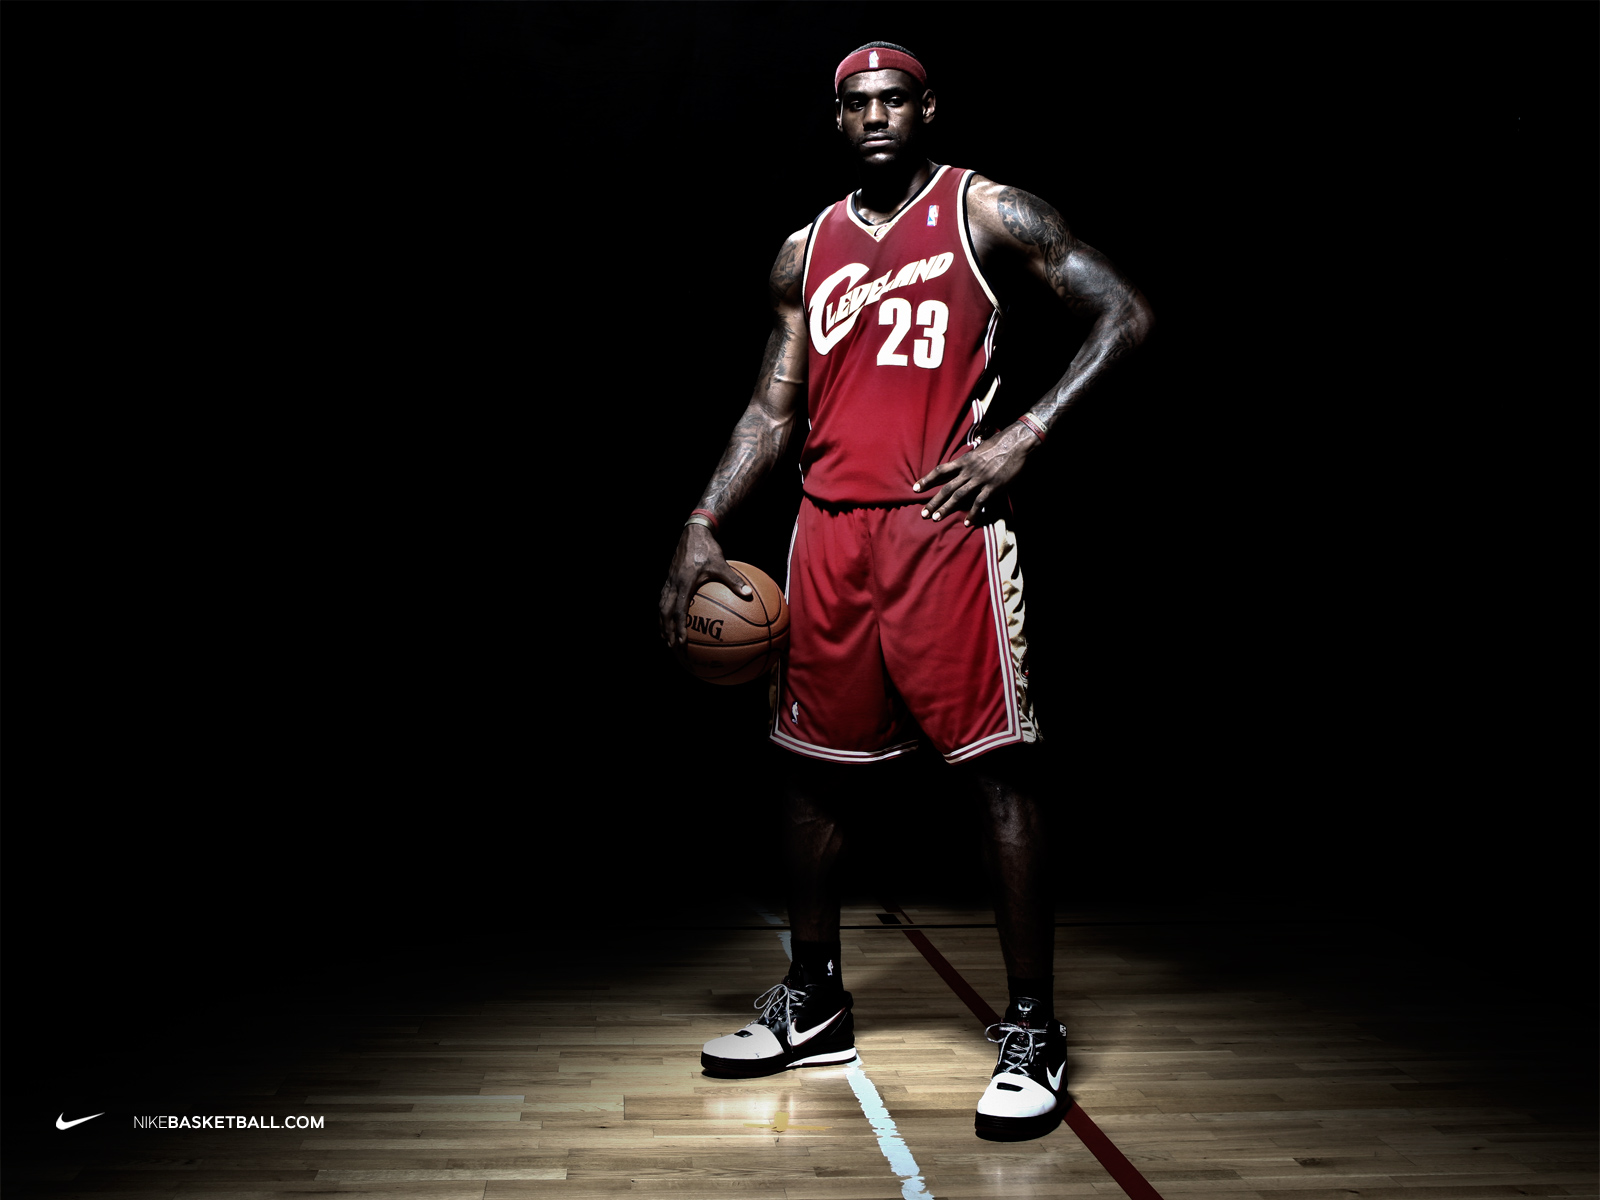 Lebron James - Photos